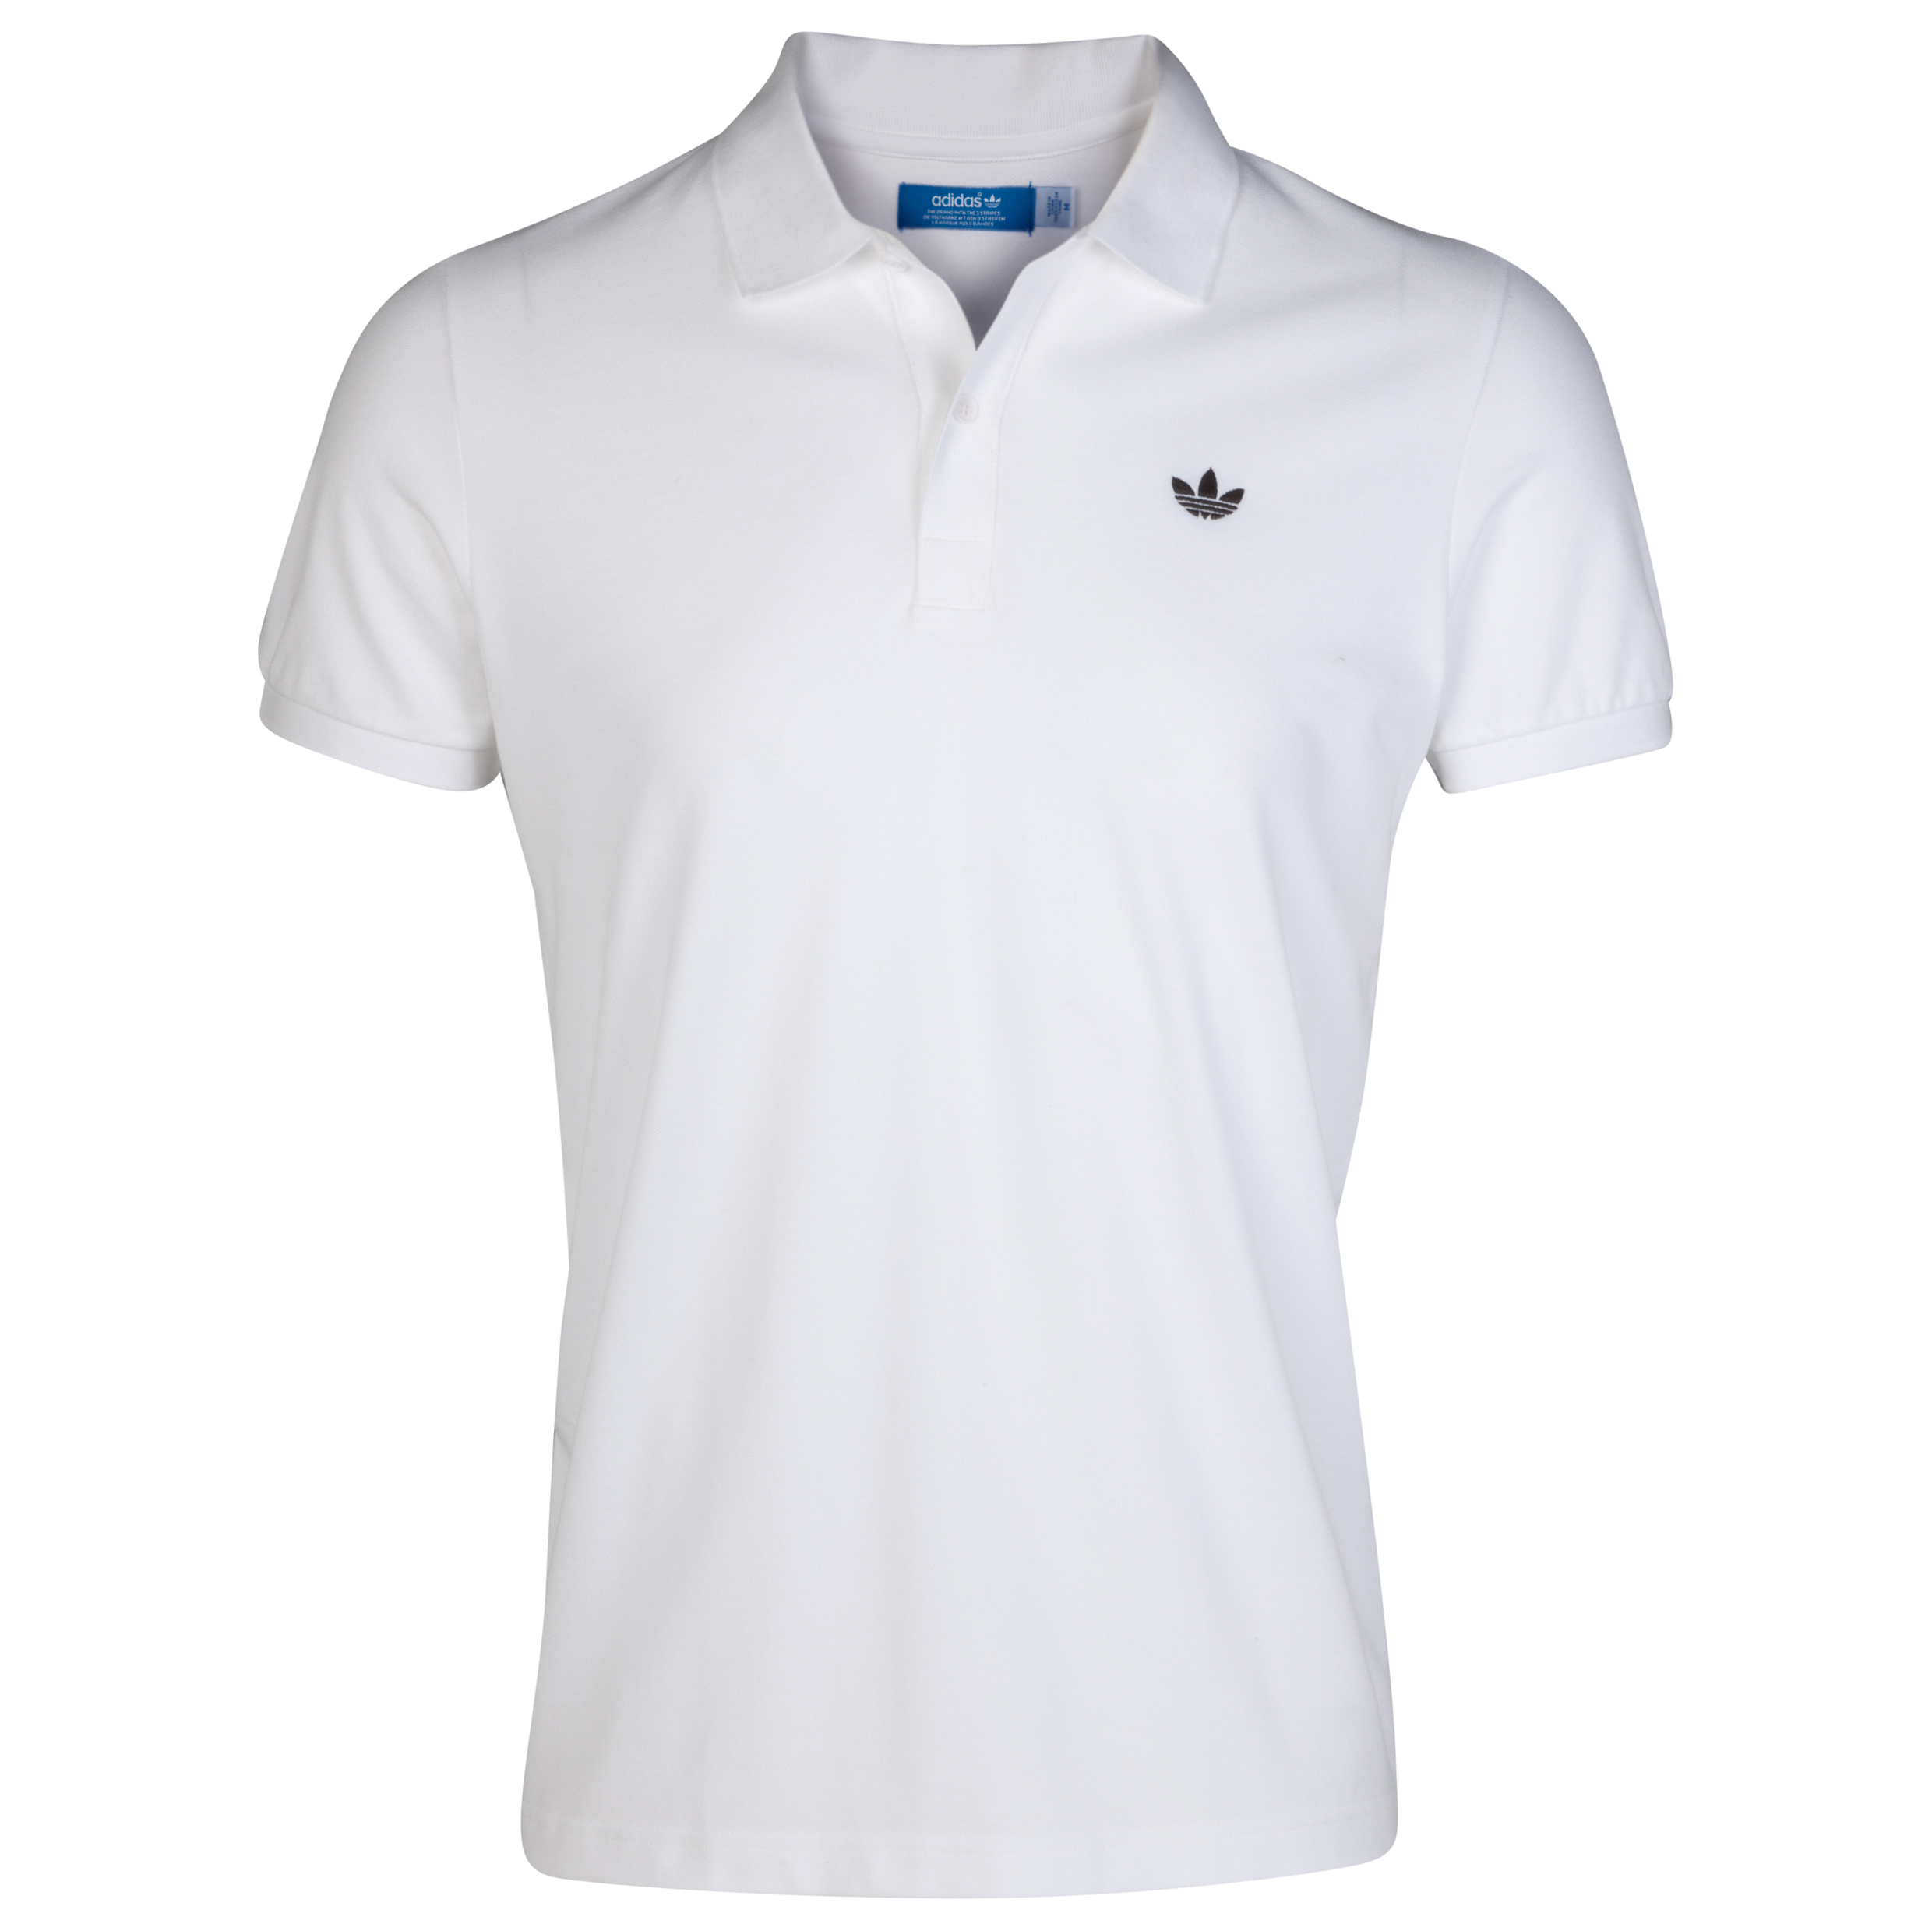 Originals Pique Polo - White